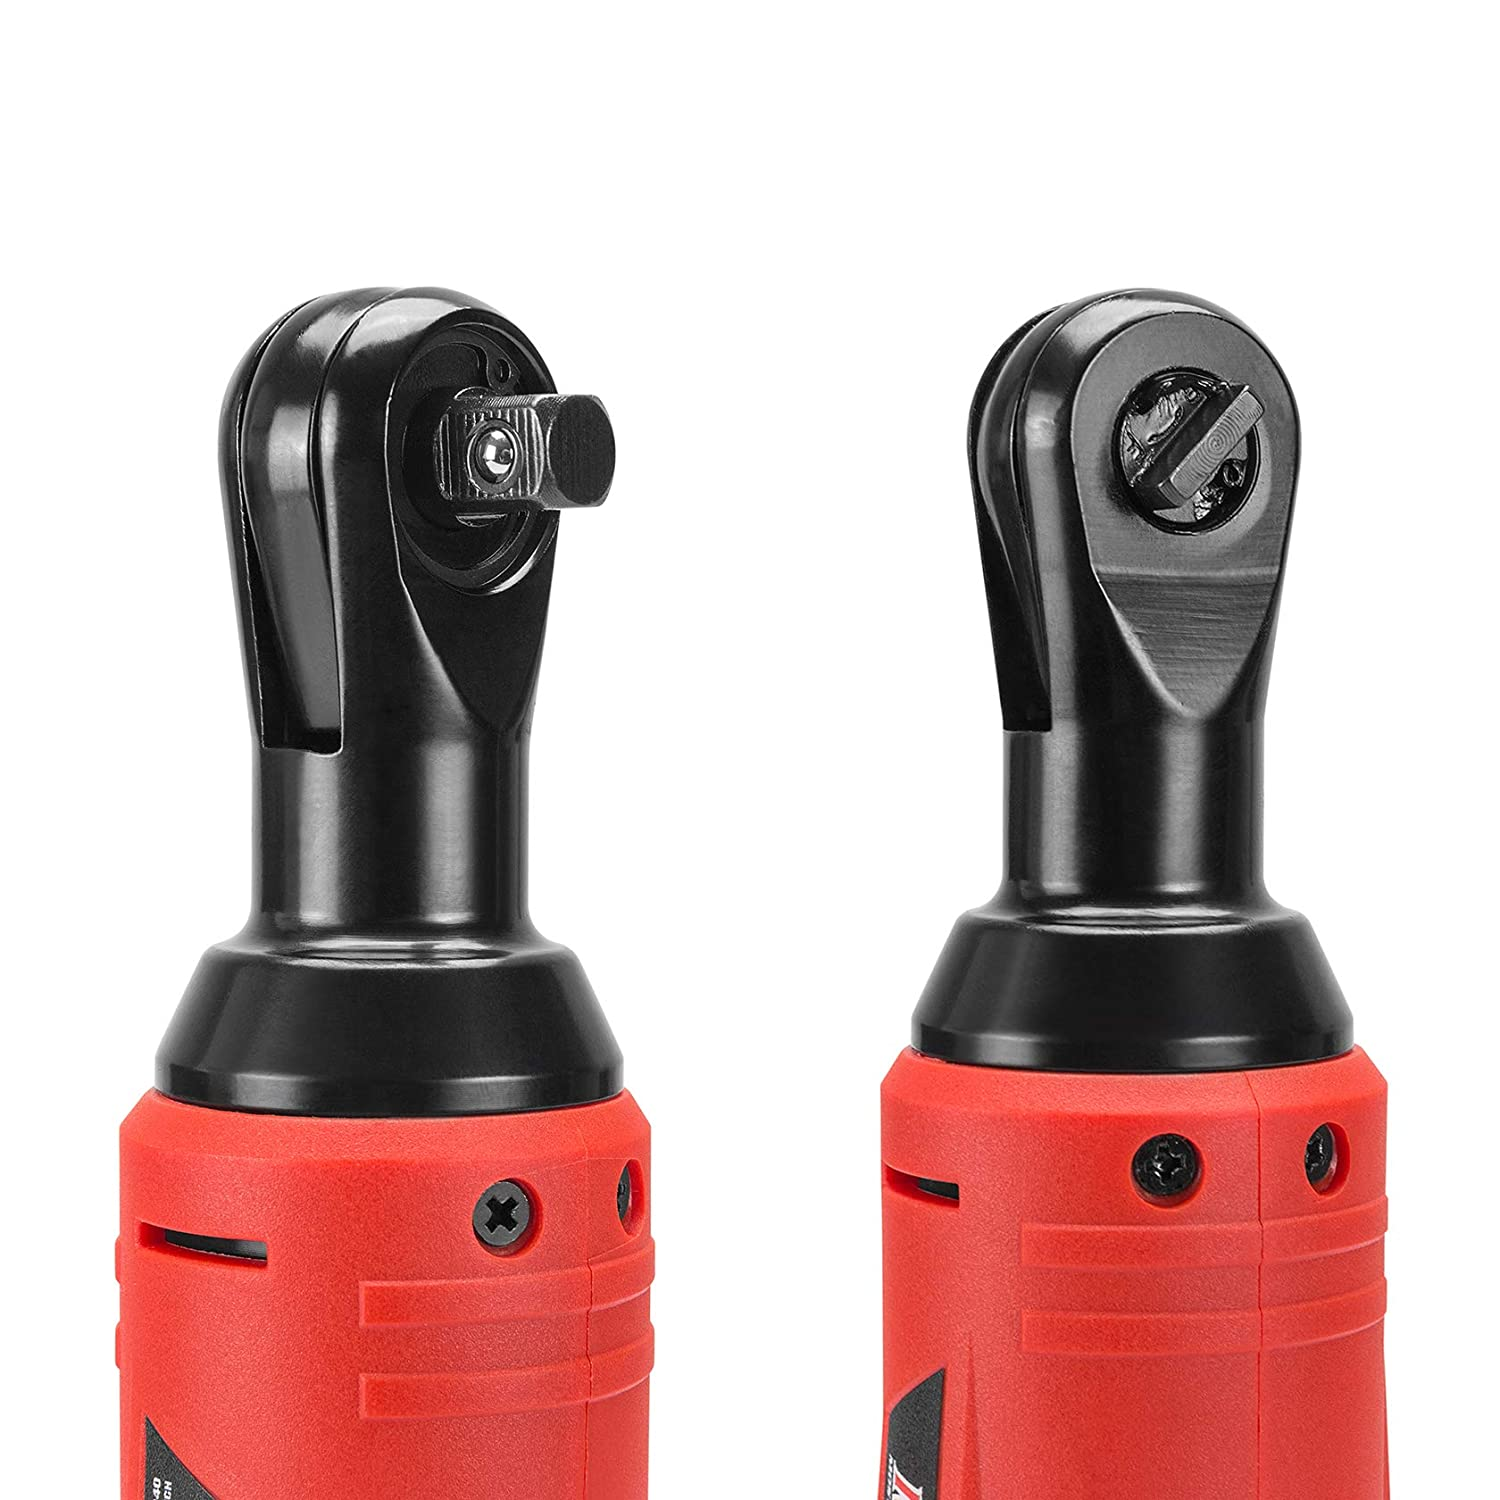 MPT 12V 3//8 40Nm Cordless Ratchet Wrench Kit with LED 7 Bolts Lithium-Ion Battery with 1 Hour Fast Charger